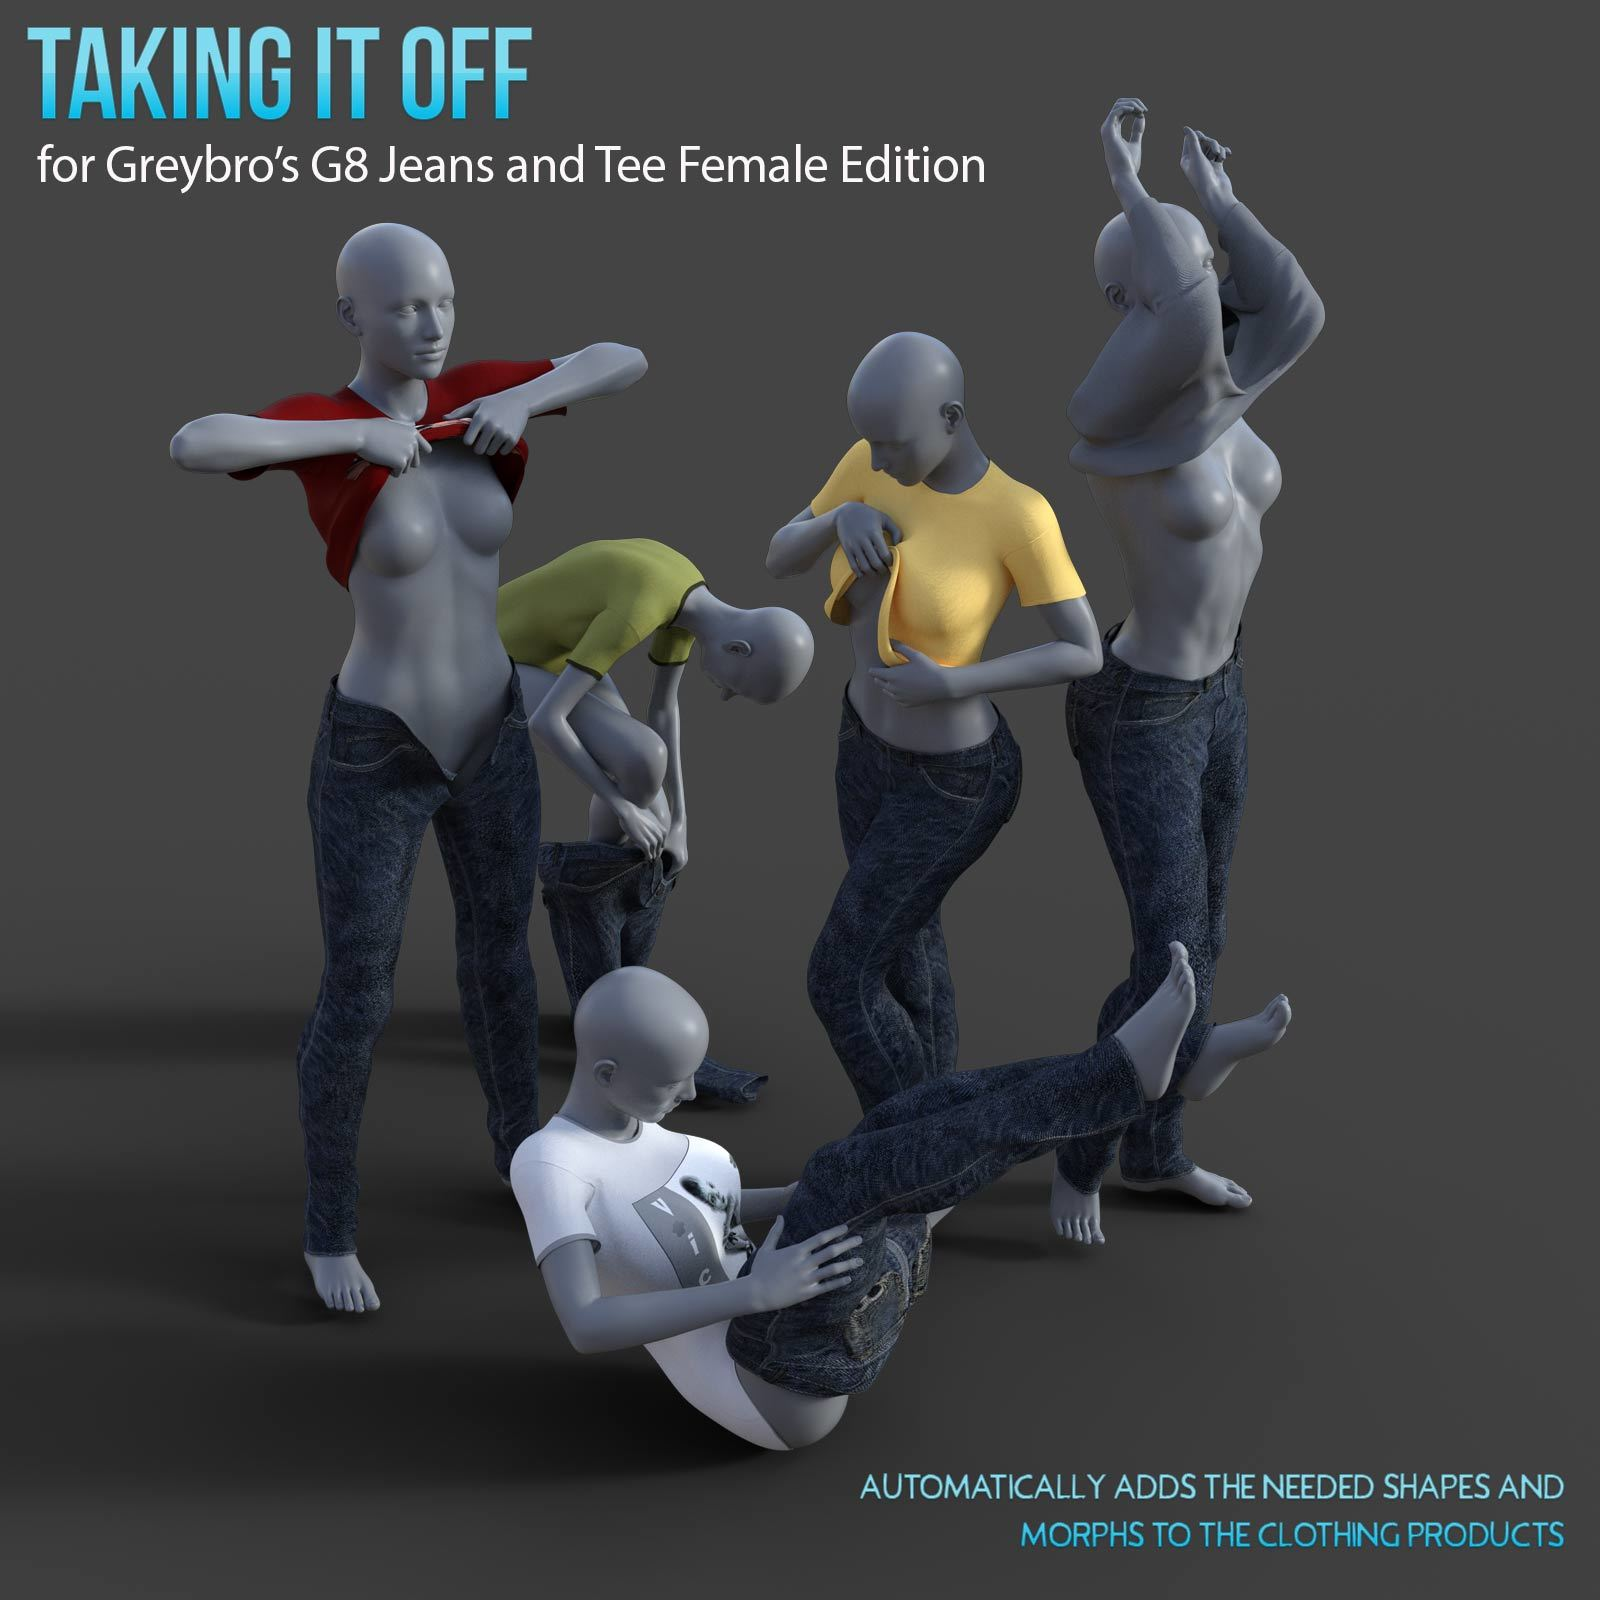 Taking It Off For Greybro's G8 Jeans and Tee Female Edition by Disciple3d